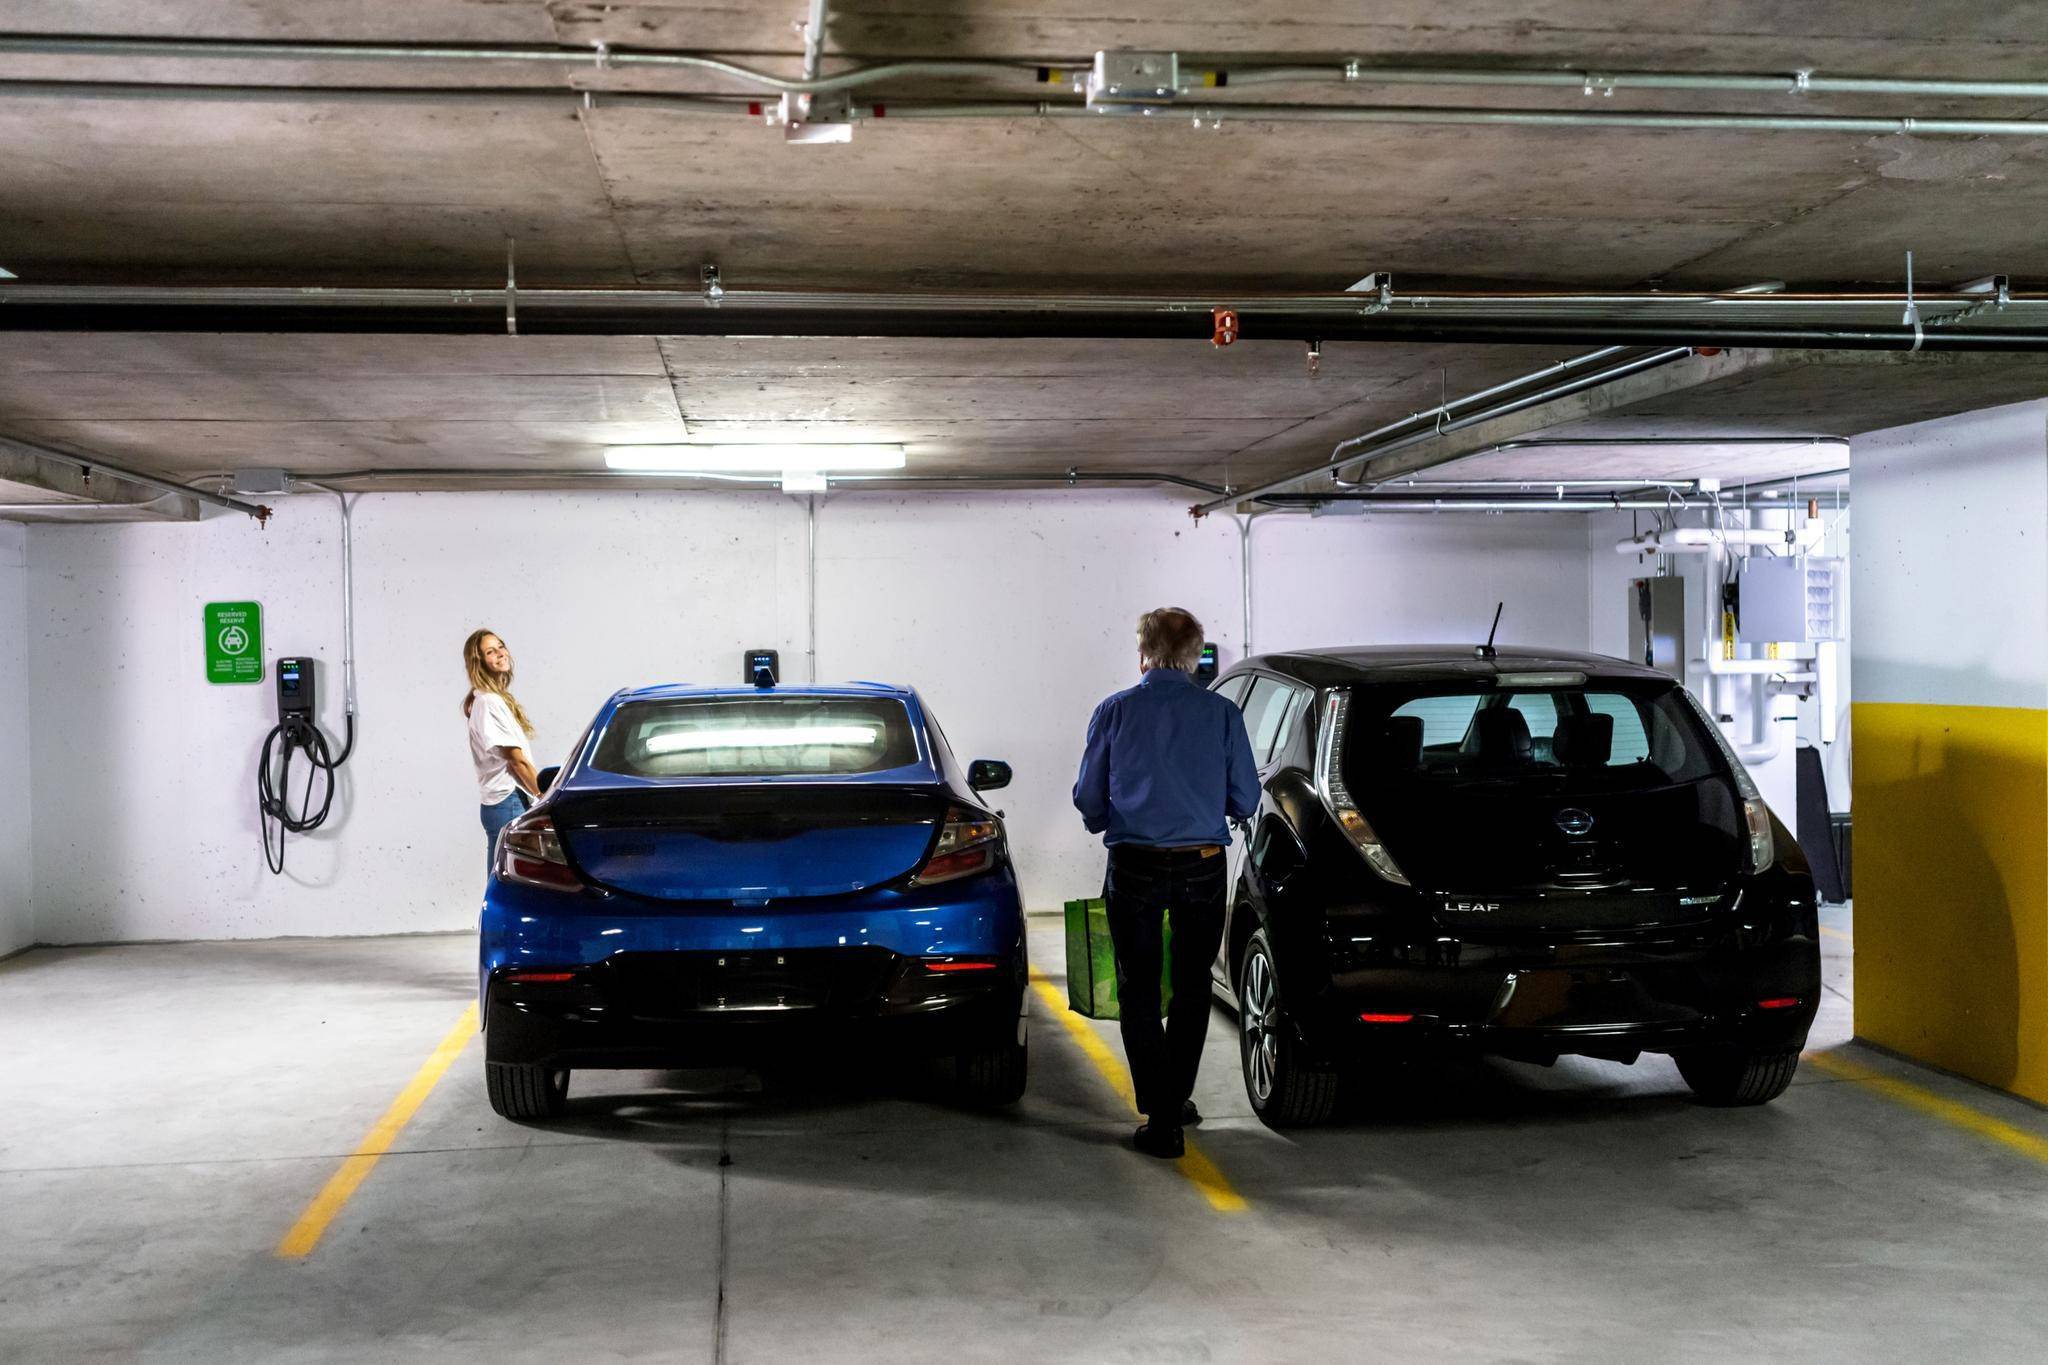 Condos Grling With Demand For Electric Car Charging Stations